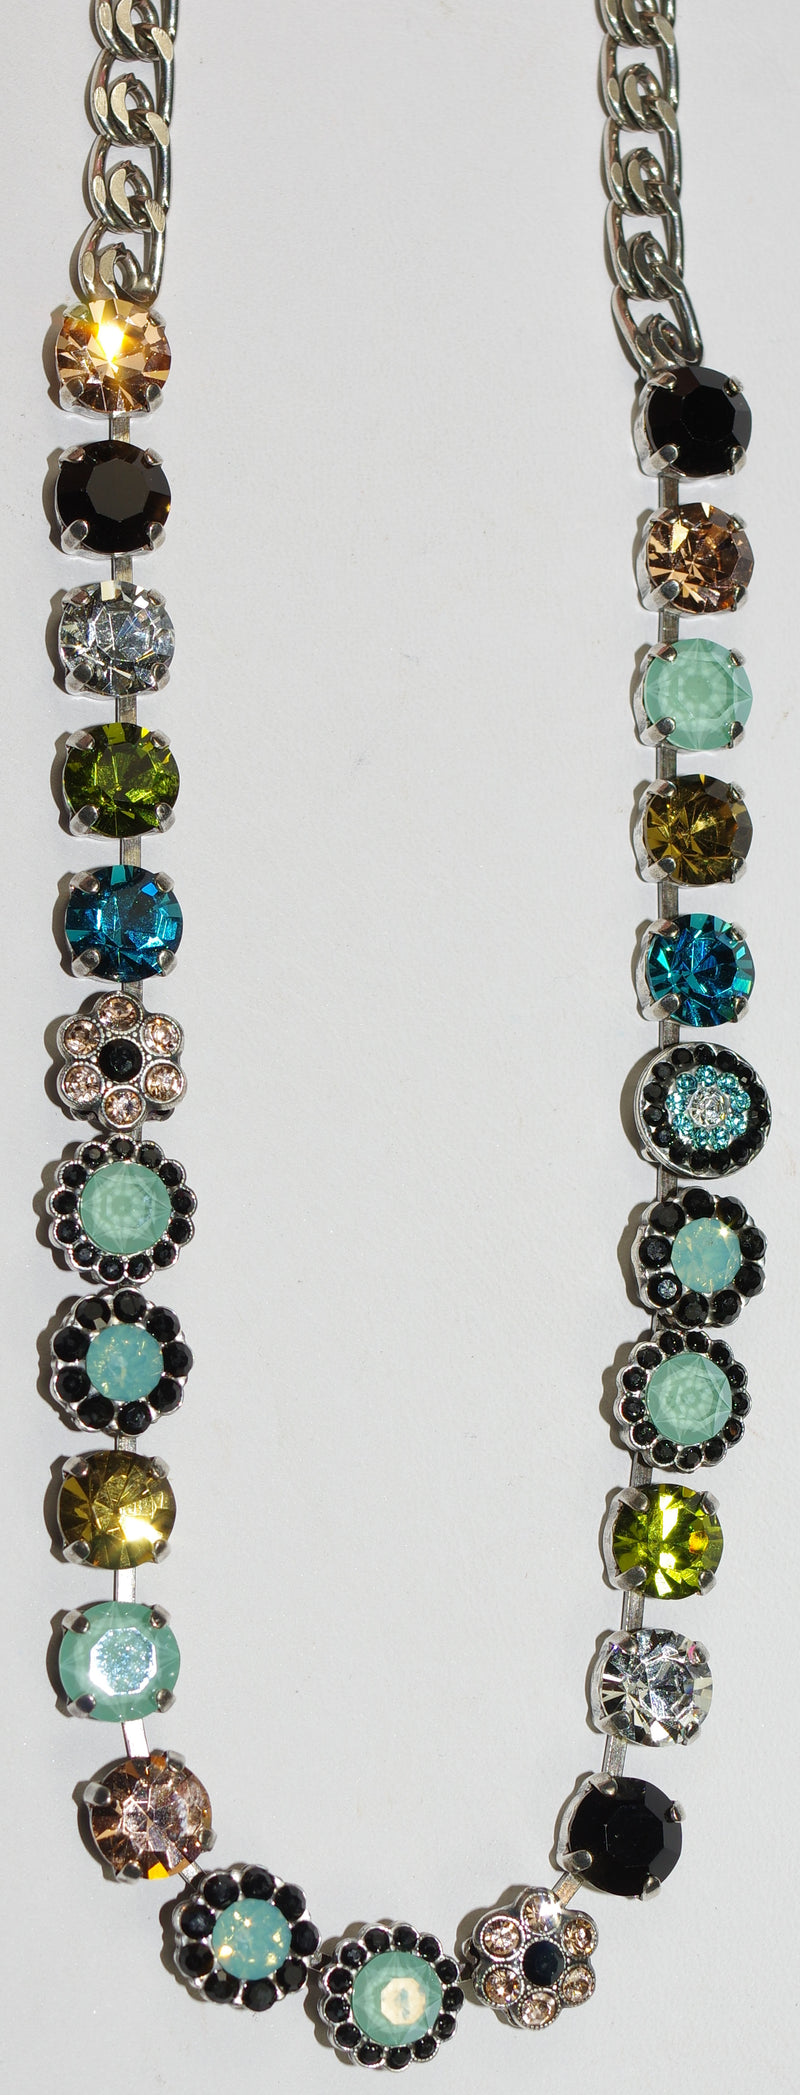 "MARIANA NECKLACE CANNOLLI LOREN: amber, black, blue, green stones, 20"" adjustable silver chain"